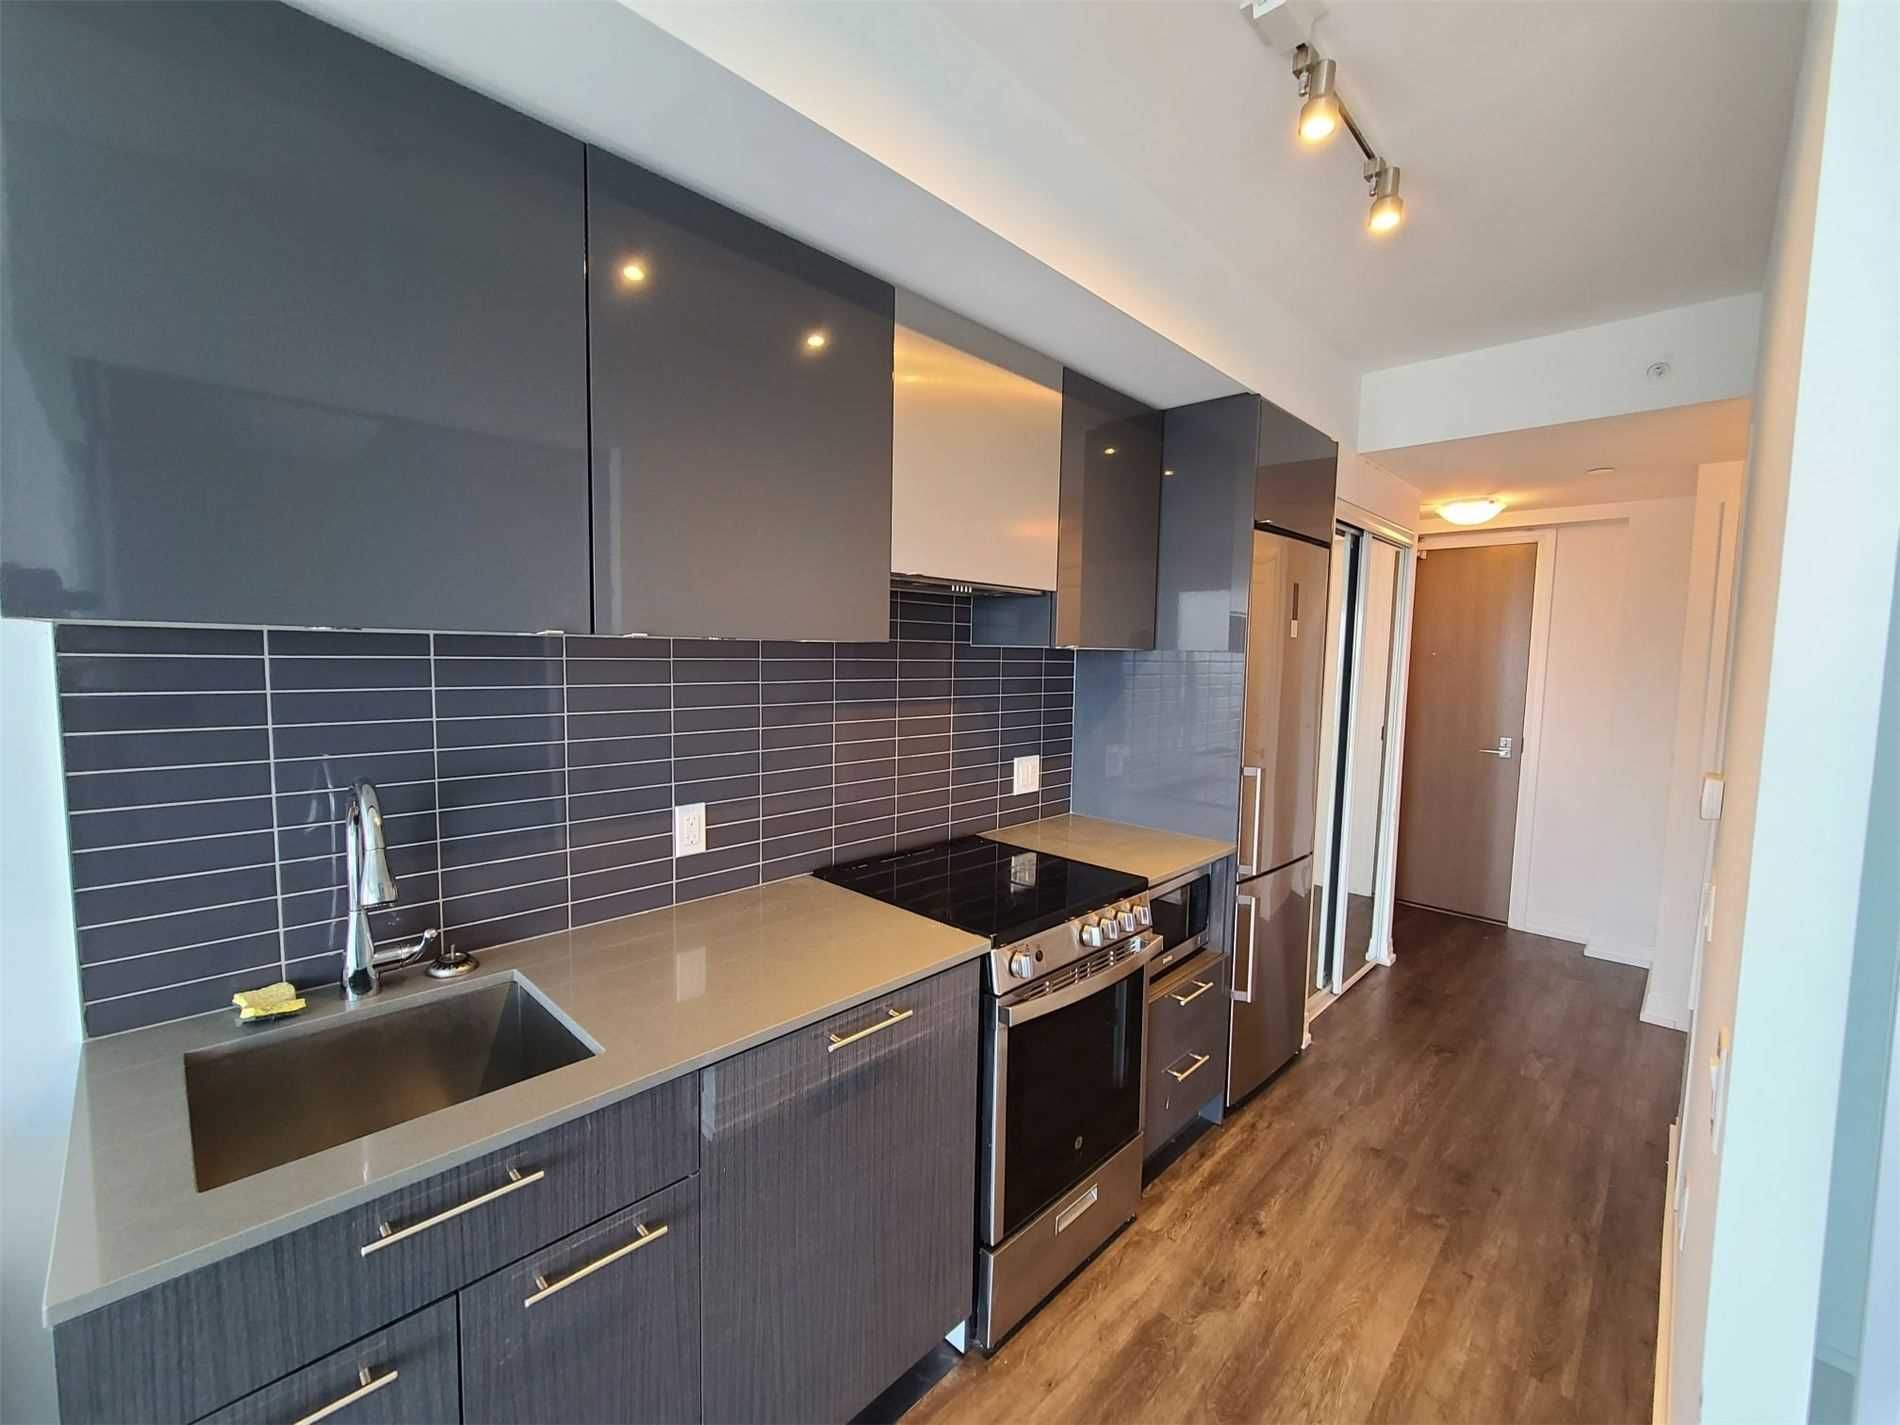 251 Jarvis St, unit 4601 for rent in Toronto - image #1